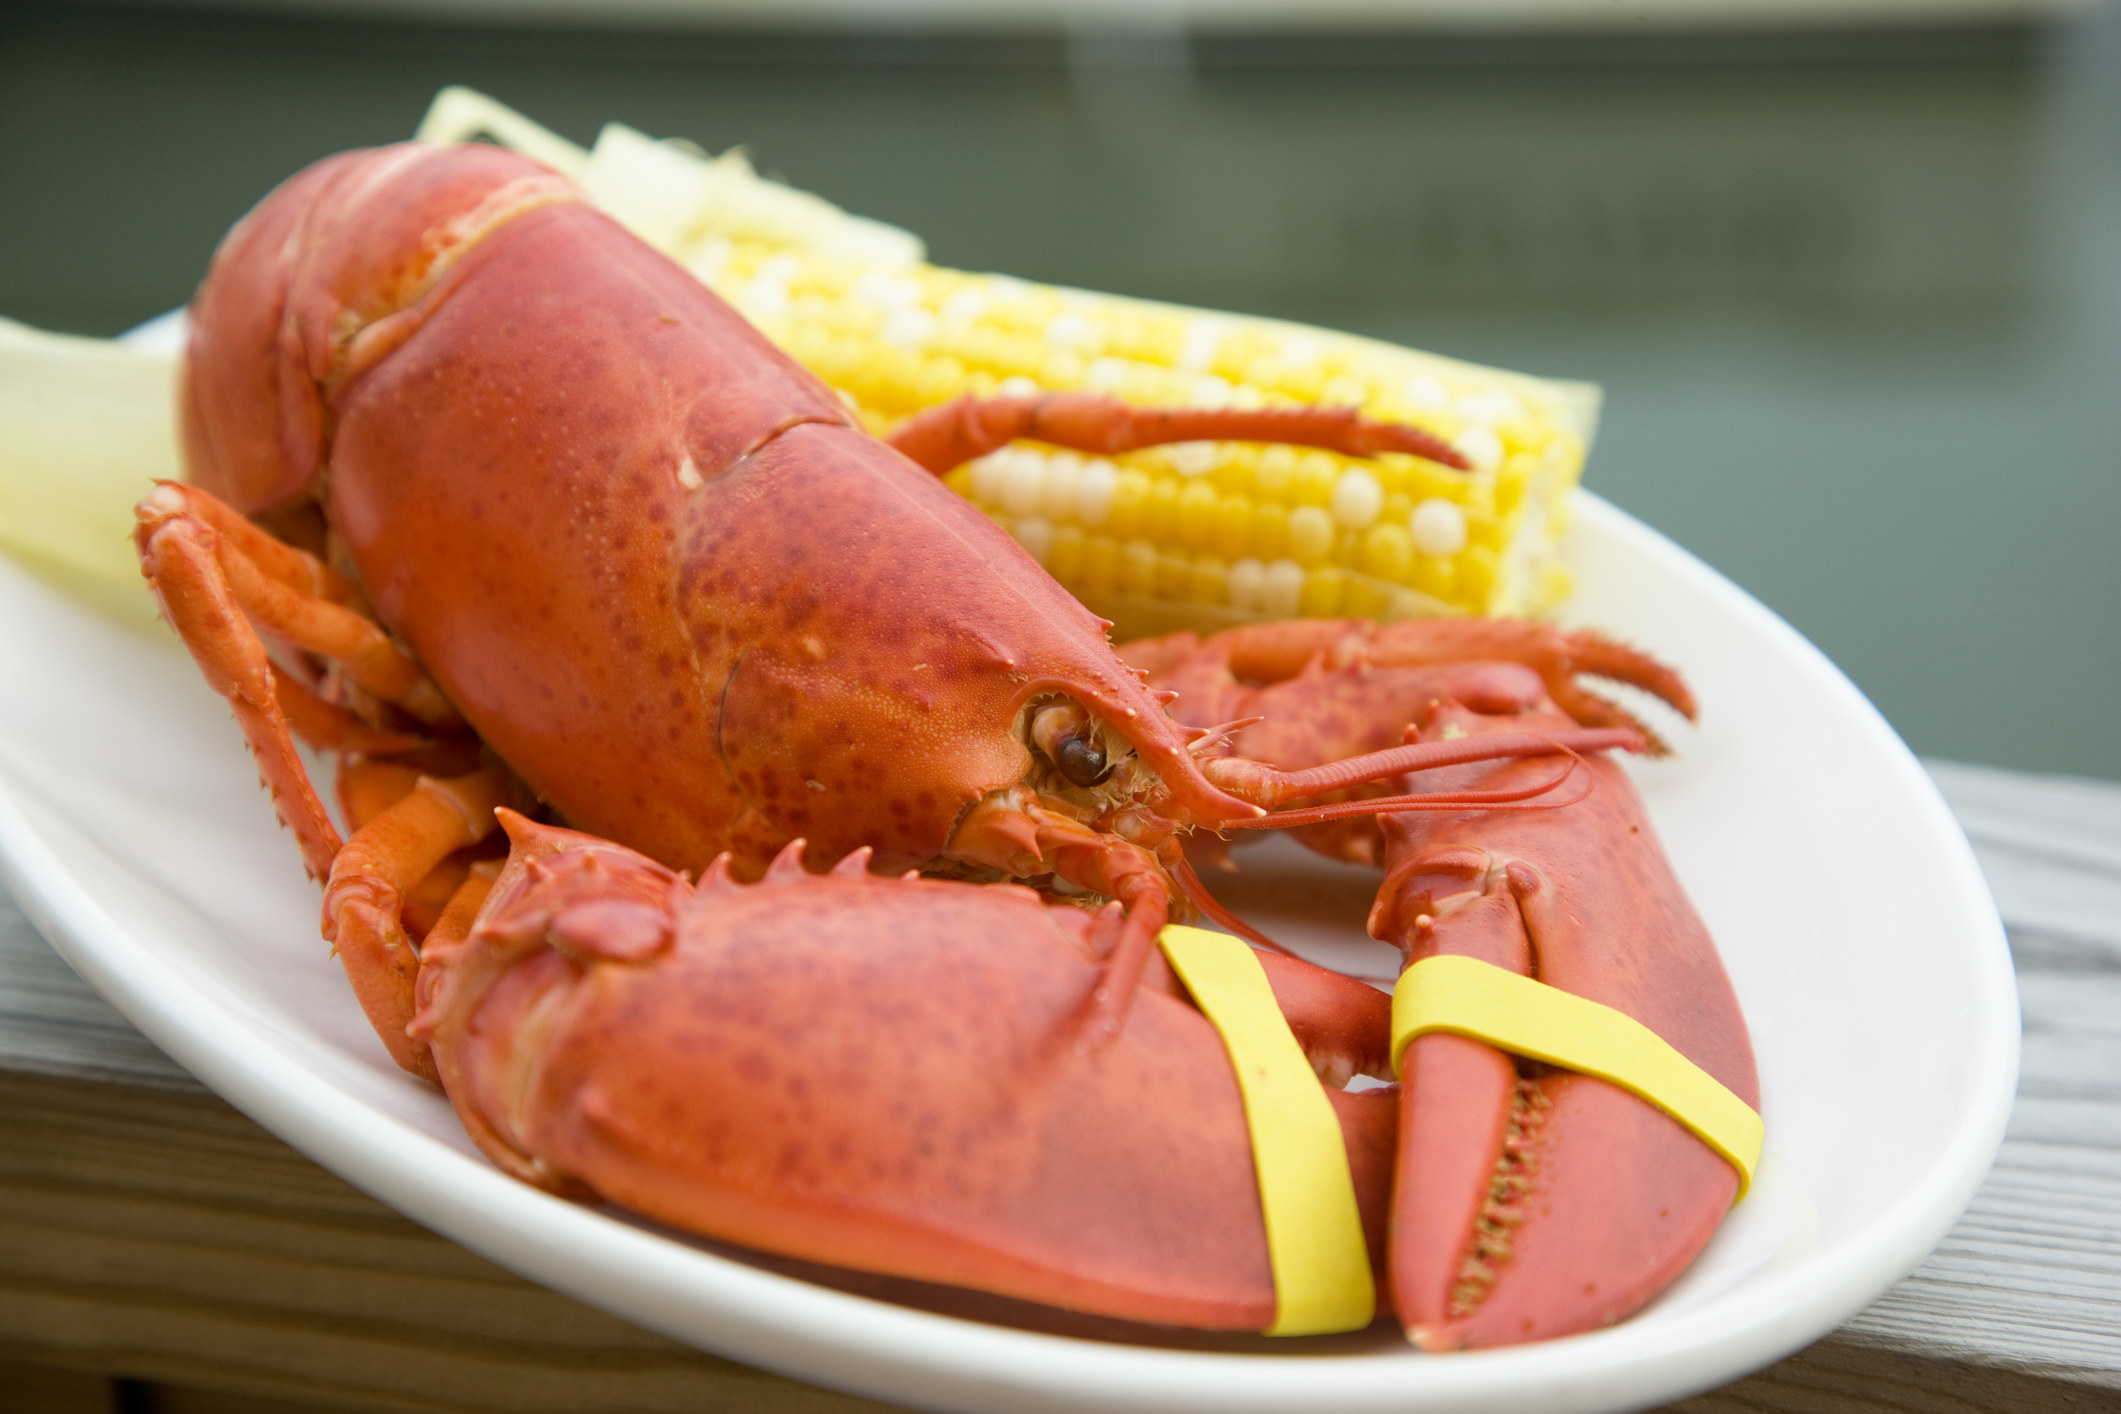 A whole steamed lobster with corn on the cob.